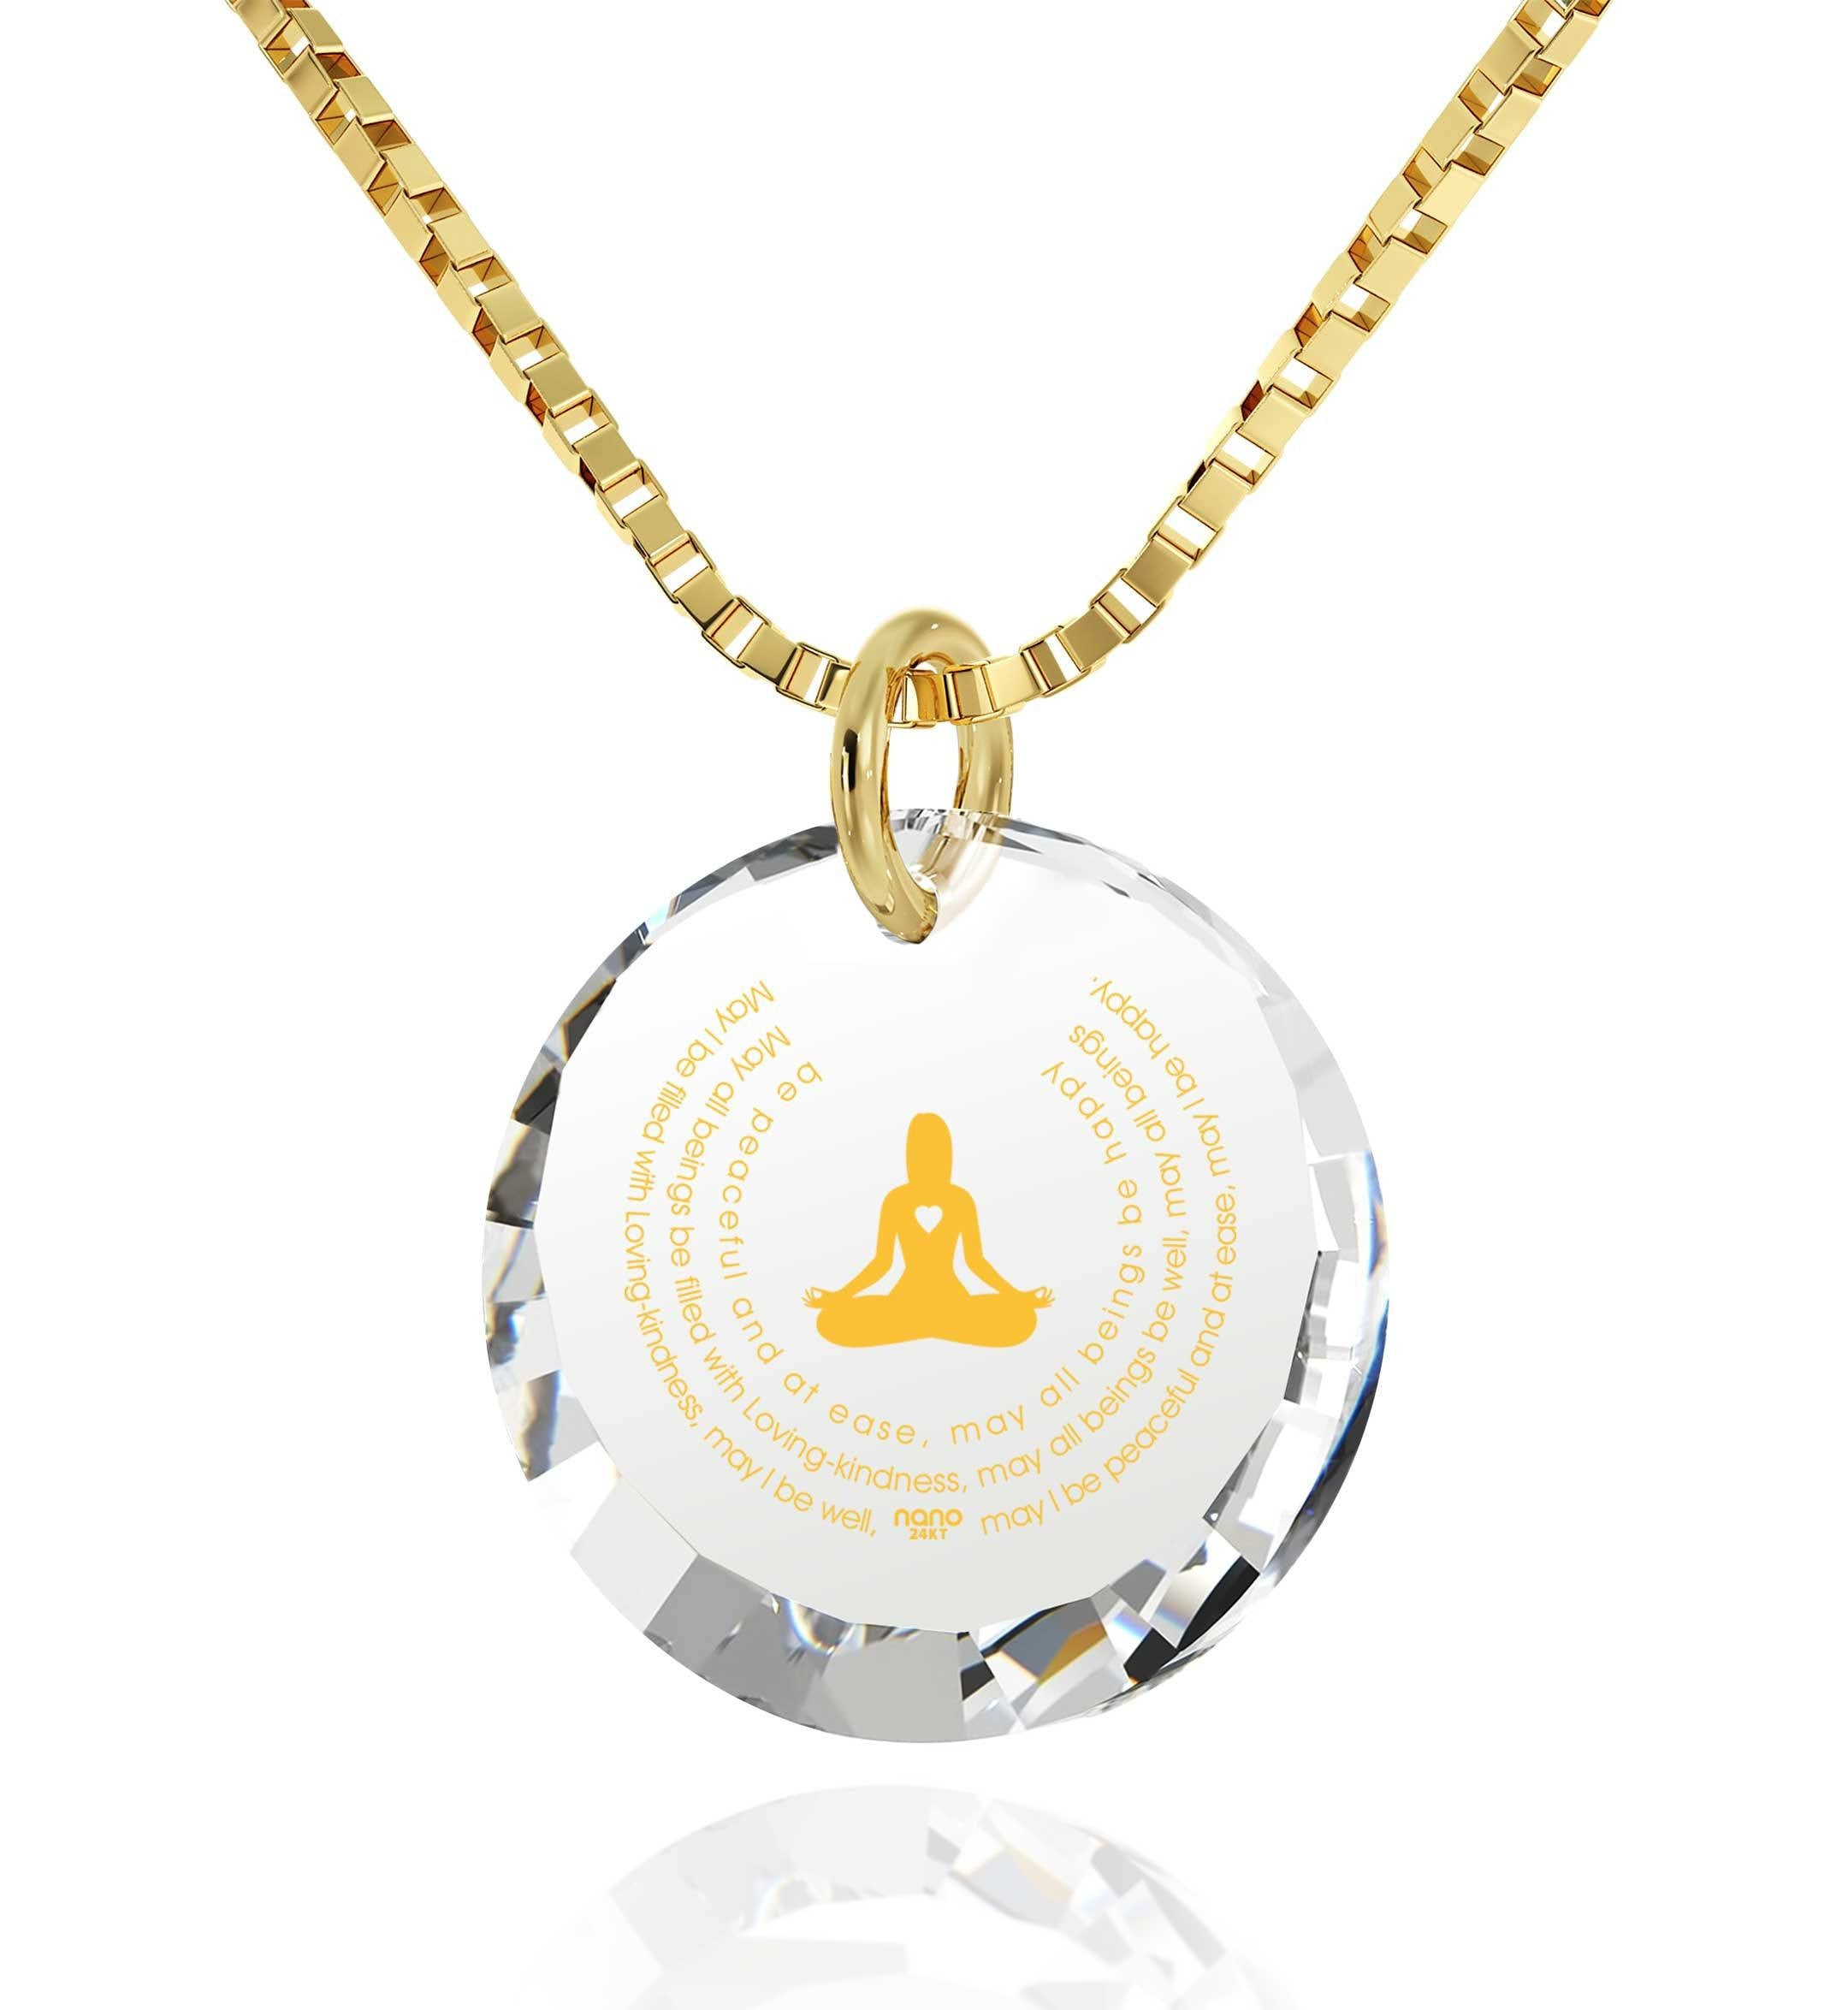 """MettaWomanEngraved in 24k, BuddhaNecklace with CrystalStone, Gifts for Meditation, 14KaratGoldNecklace"""